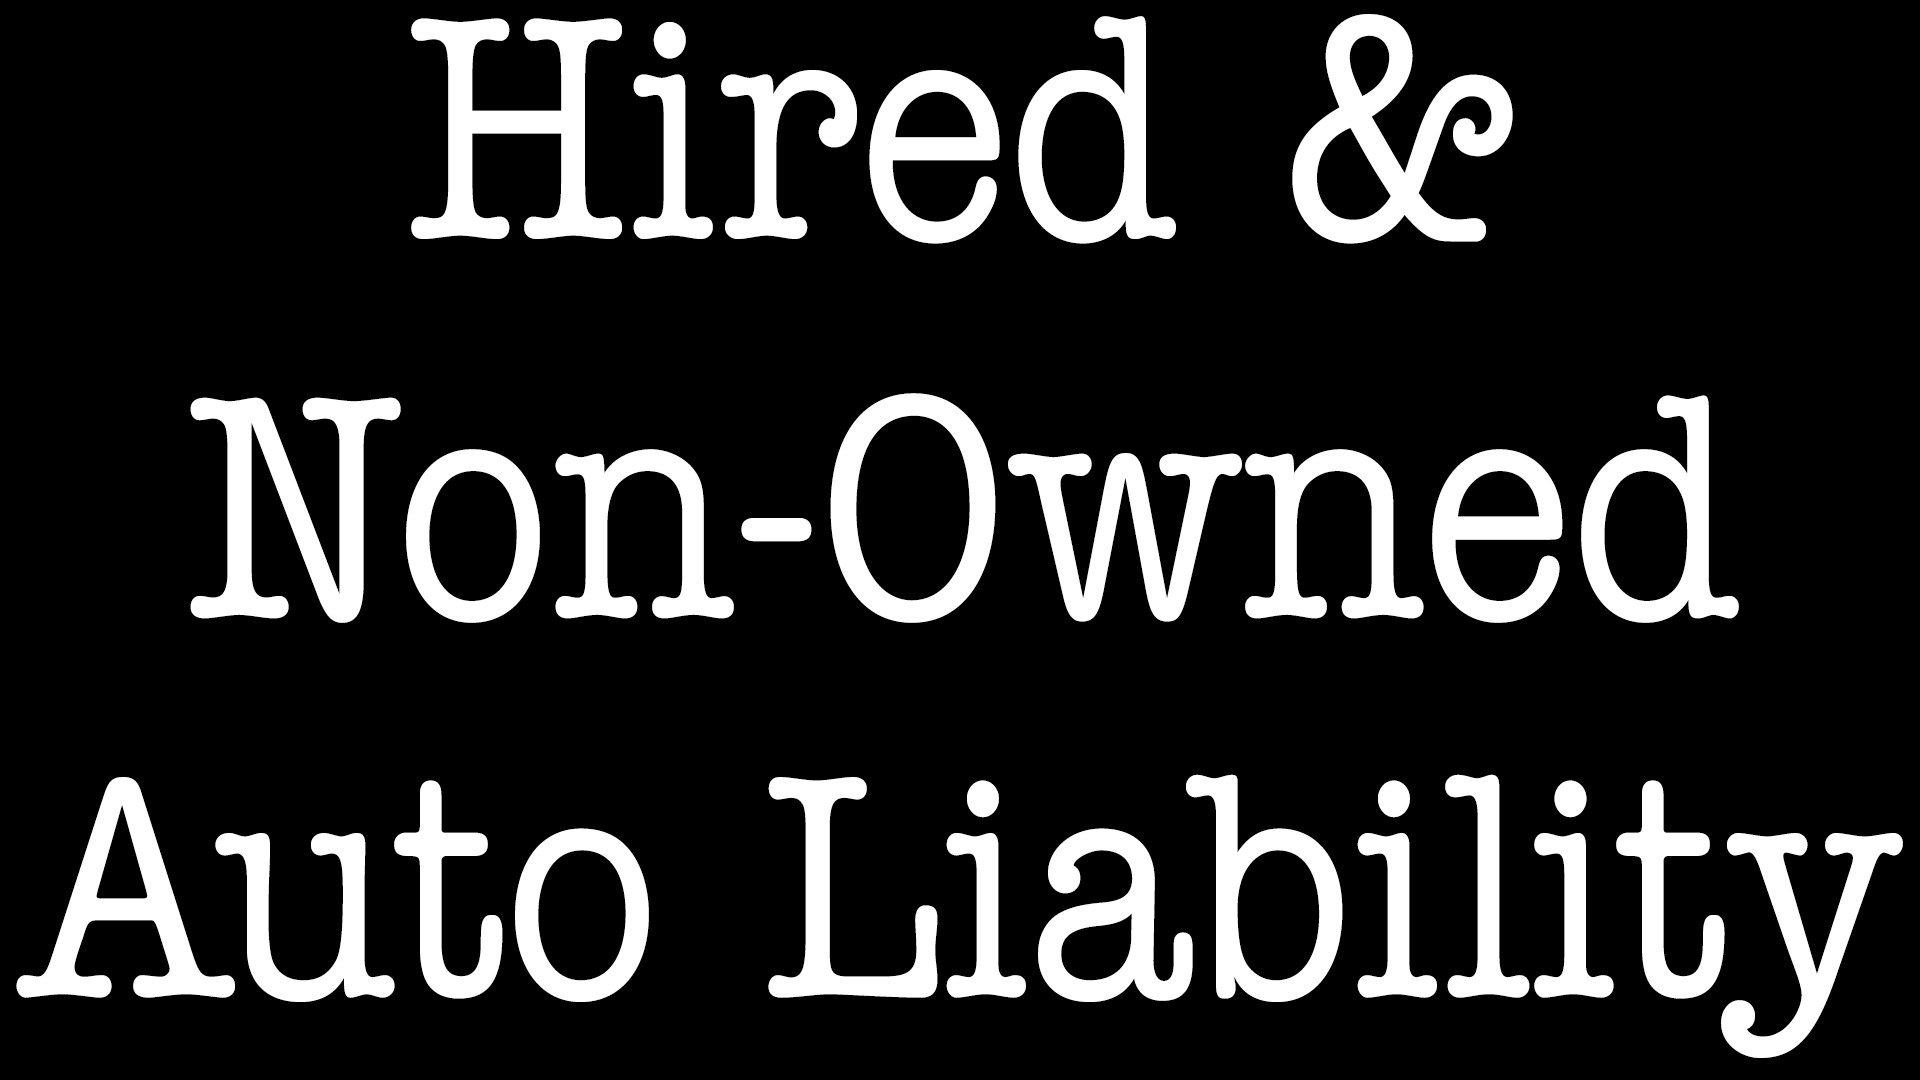 Hired And Non-Owned Auto Liability Insurance - ALLCHOICE Insurance - North Carolina